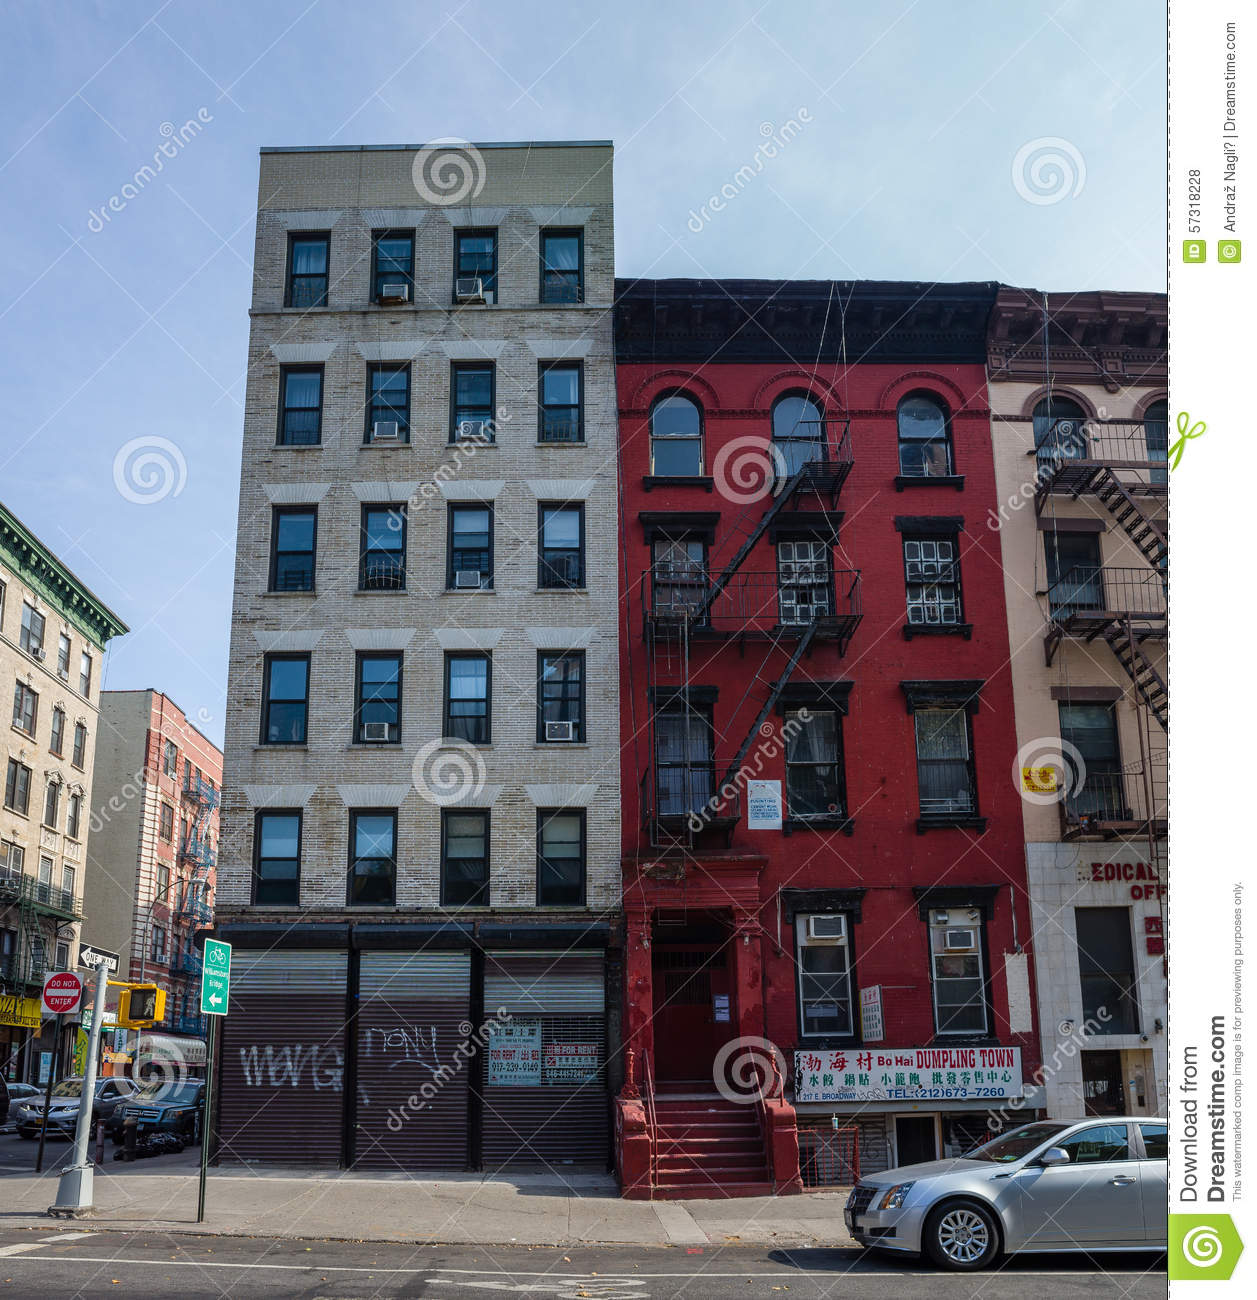 New York City Apartment Buildings: Red Apartment Building In Chinatown Where Main Character